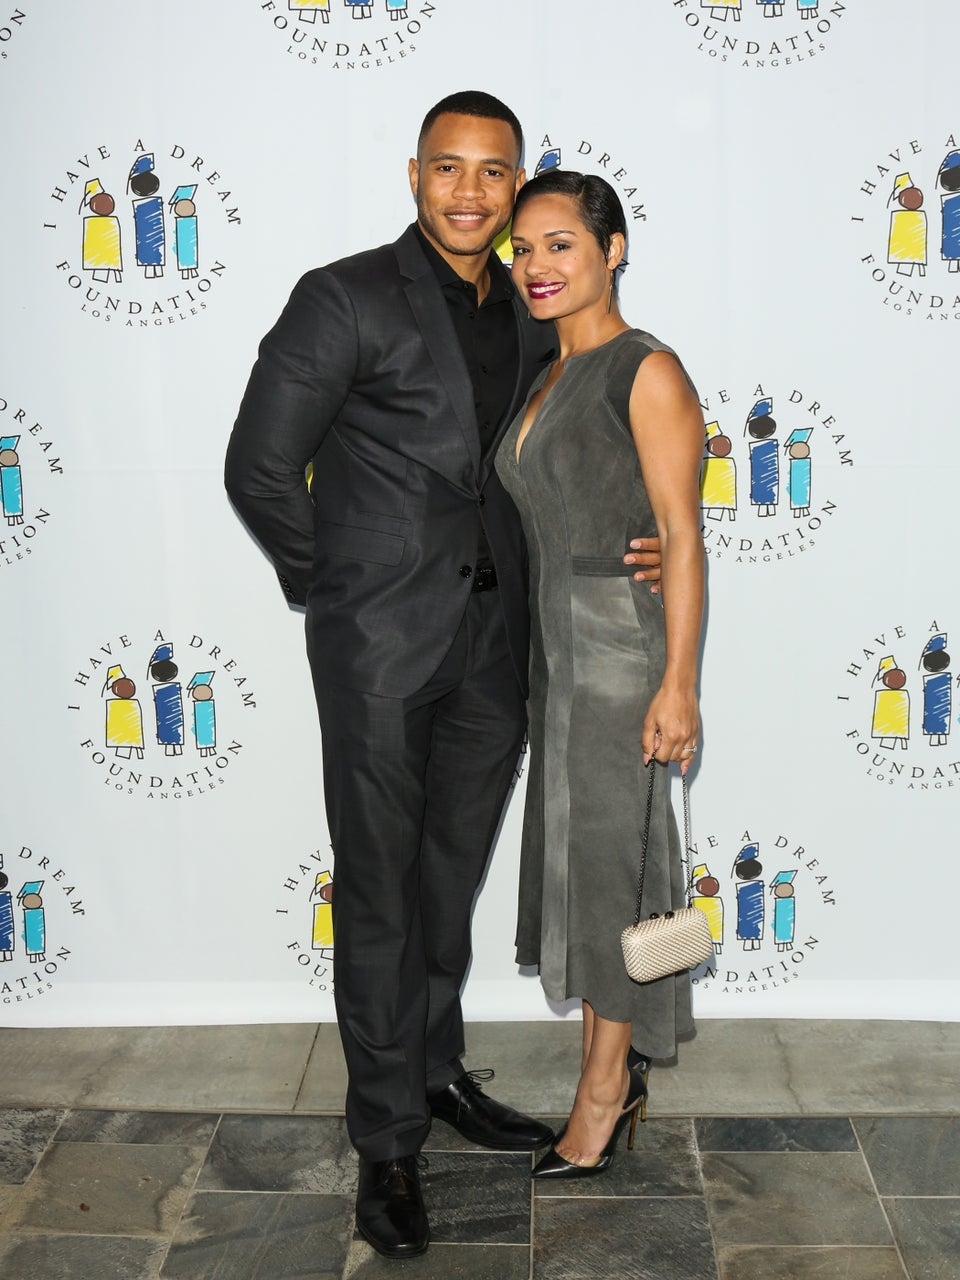 Surprise! 'Empire' Co-Stars Grace Gealey and Trai Byers Are Married